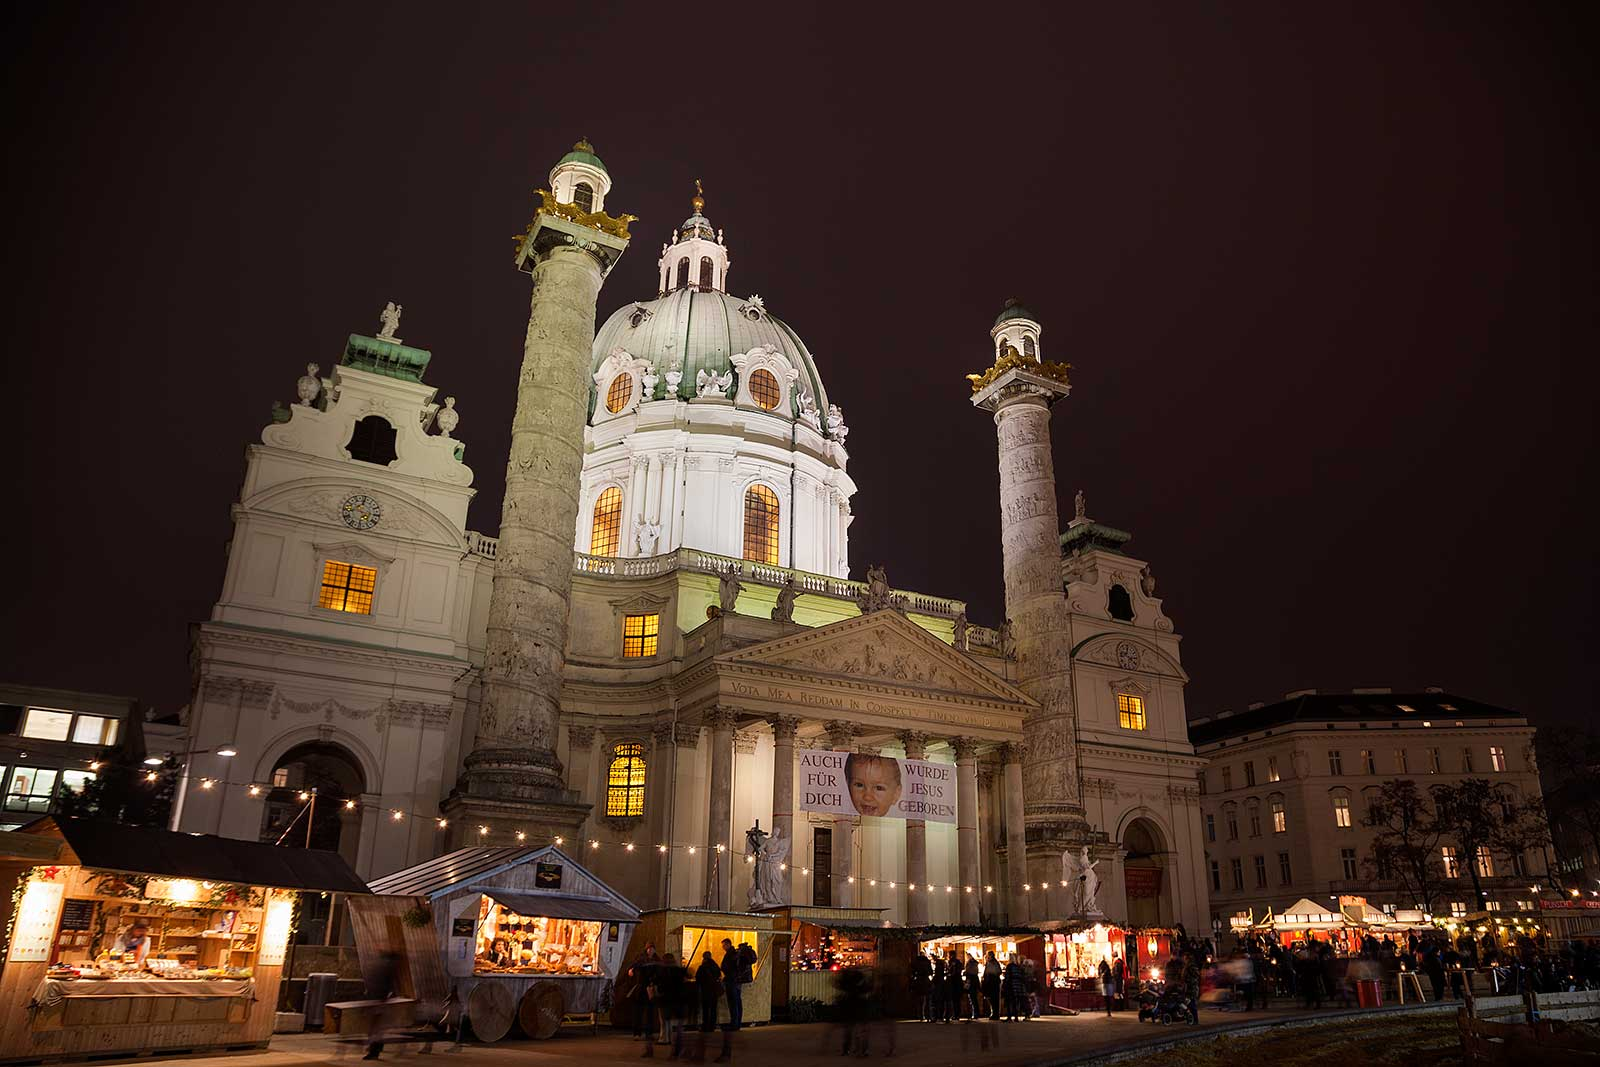 The Christmas market in front of the Karlskirche is a highlight for every visitor.